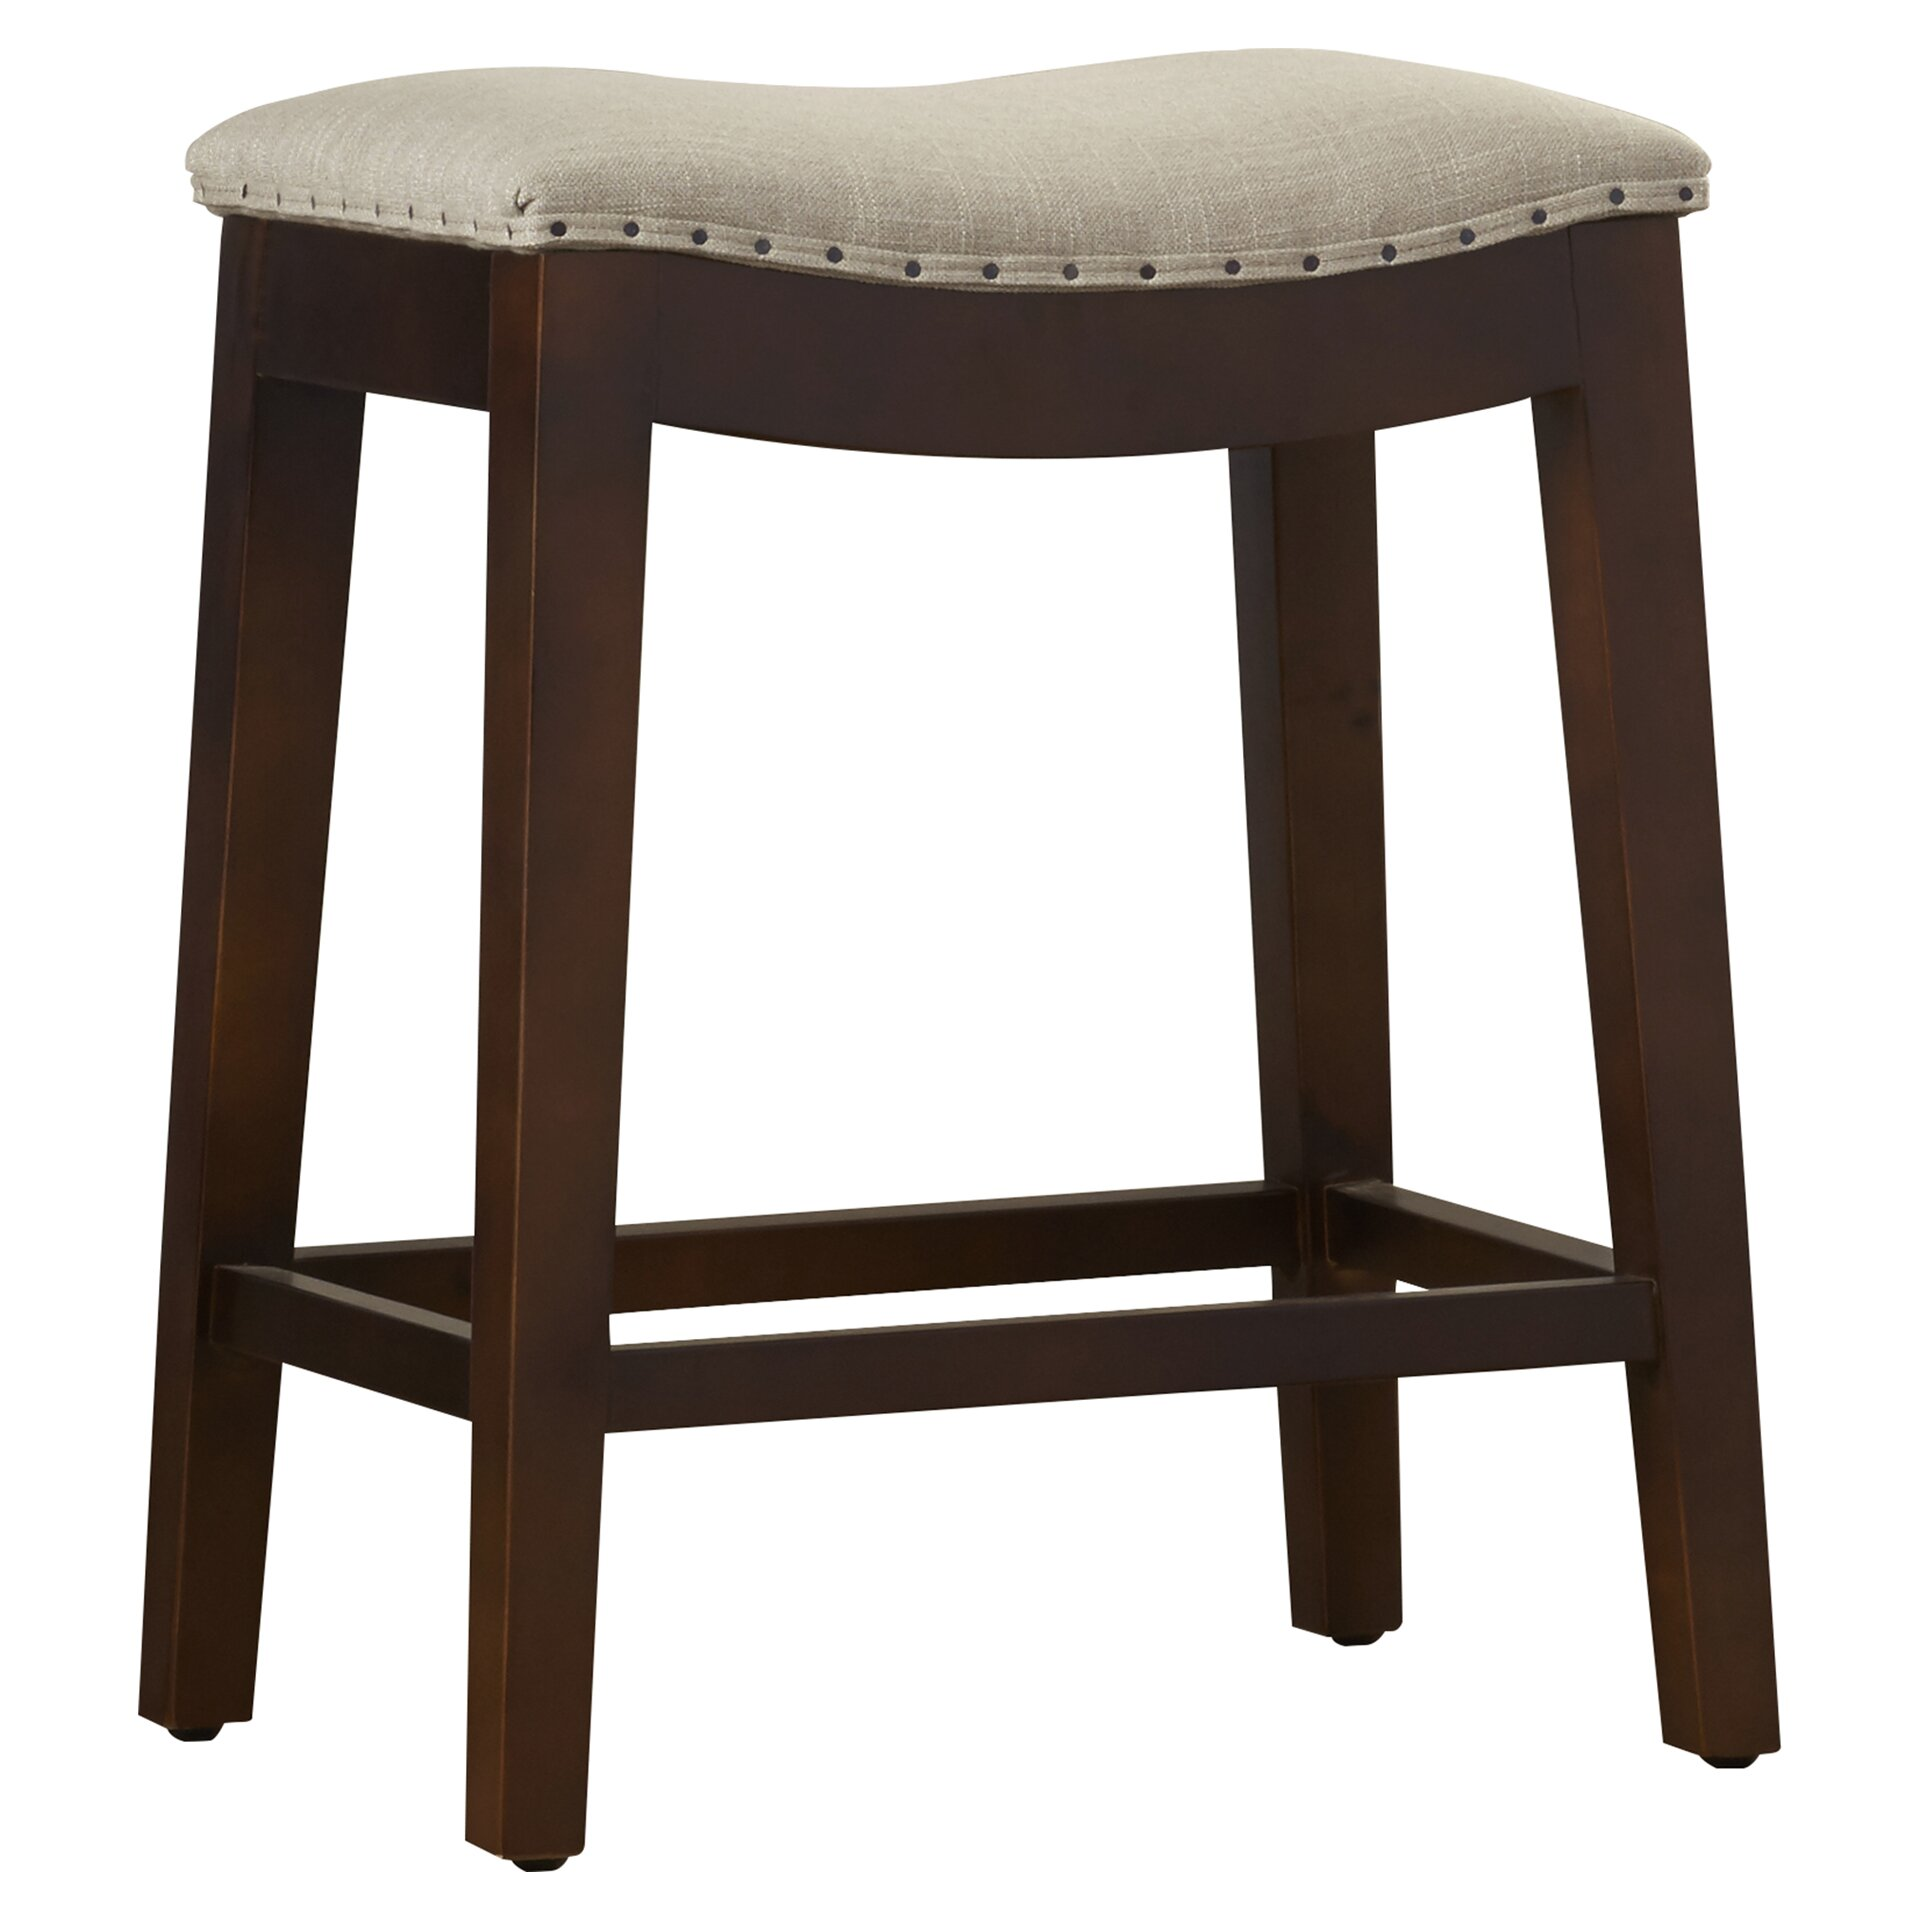 Alcott Hill Stoutsville 24quot Bar Stool with Cushion  : Stoutsville 24 Bar Stool with Cushion ALCT2456 from www.wayfair.com size 1920 x 1920 jpeg 262kB